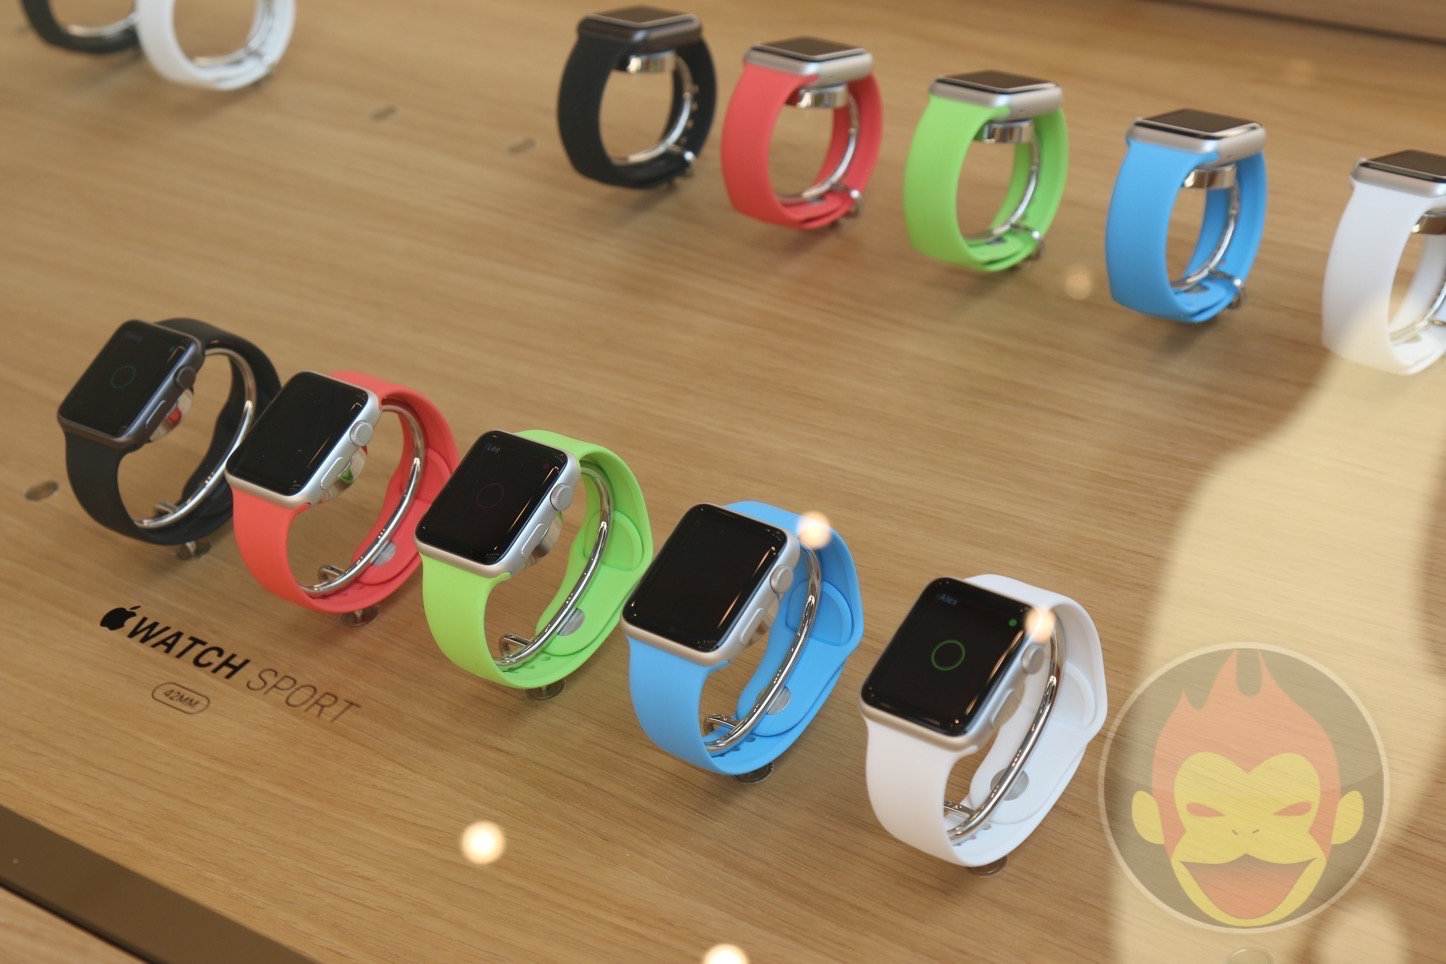 Apple-Watch-Omotesando-23.JPG